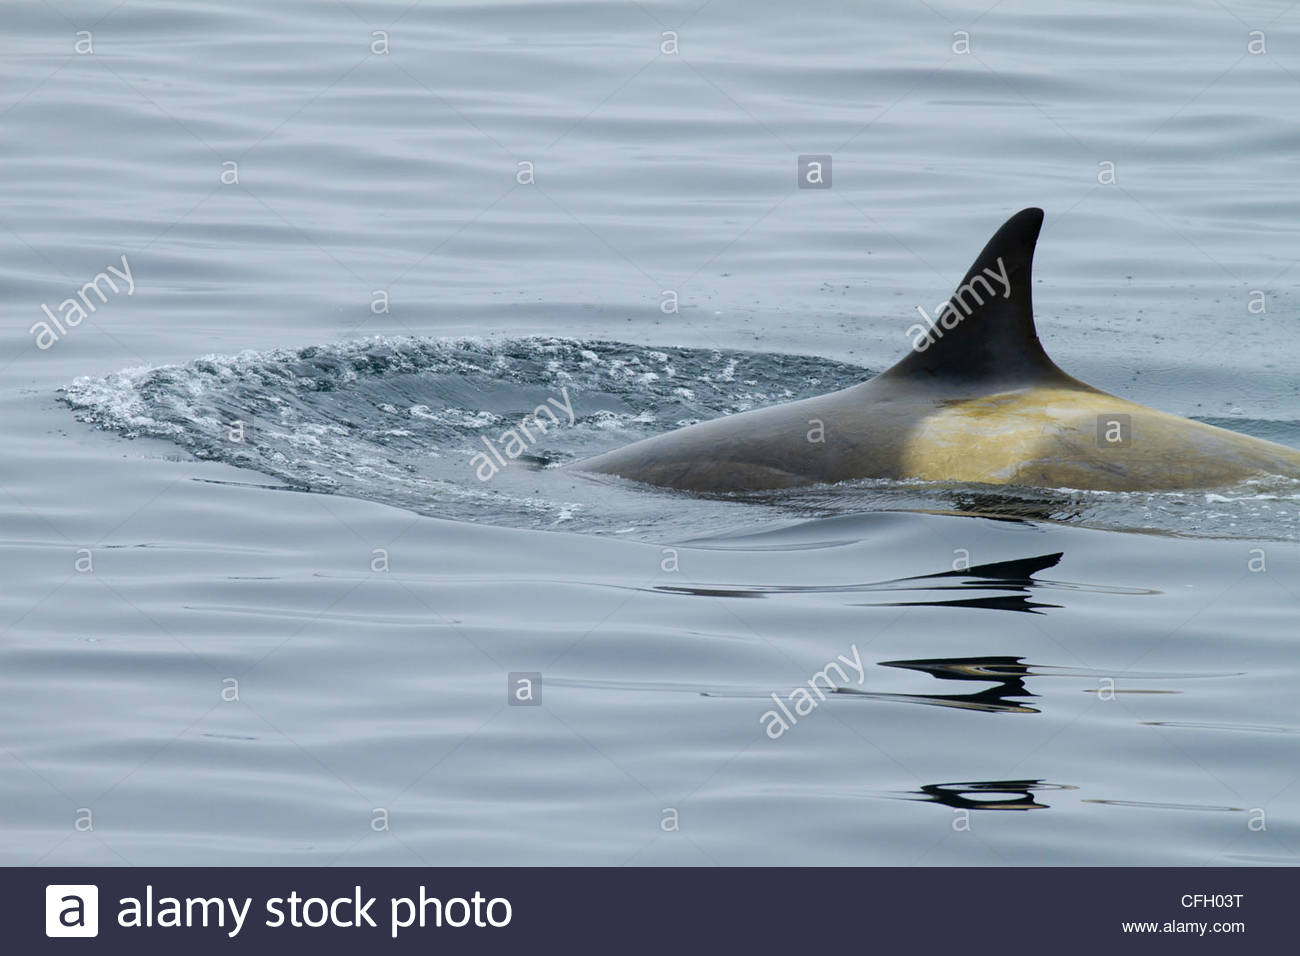 One orca with only back and dorsal fin showing. - Stock Image